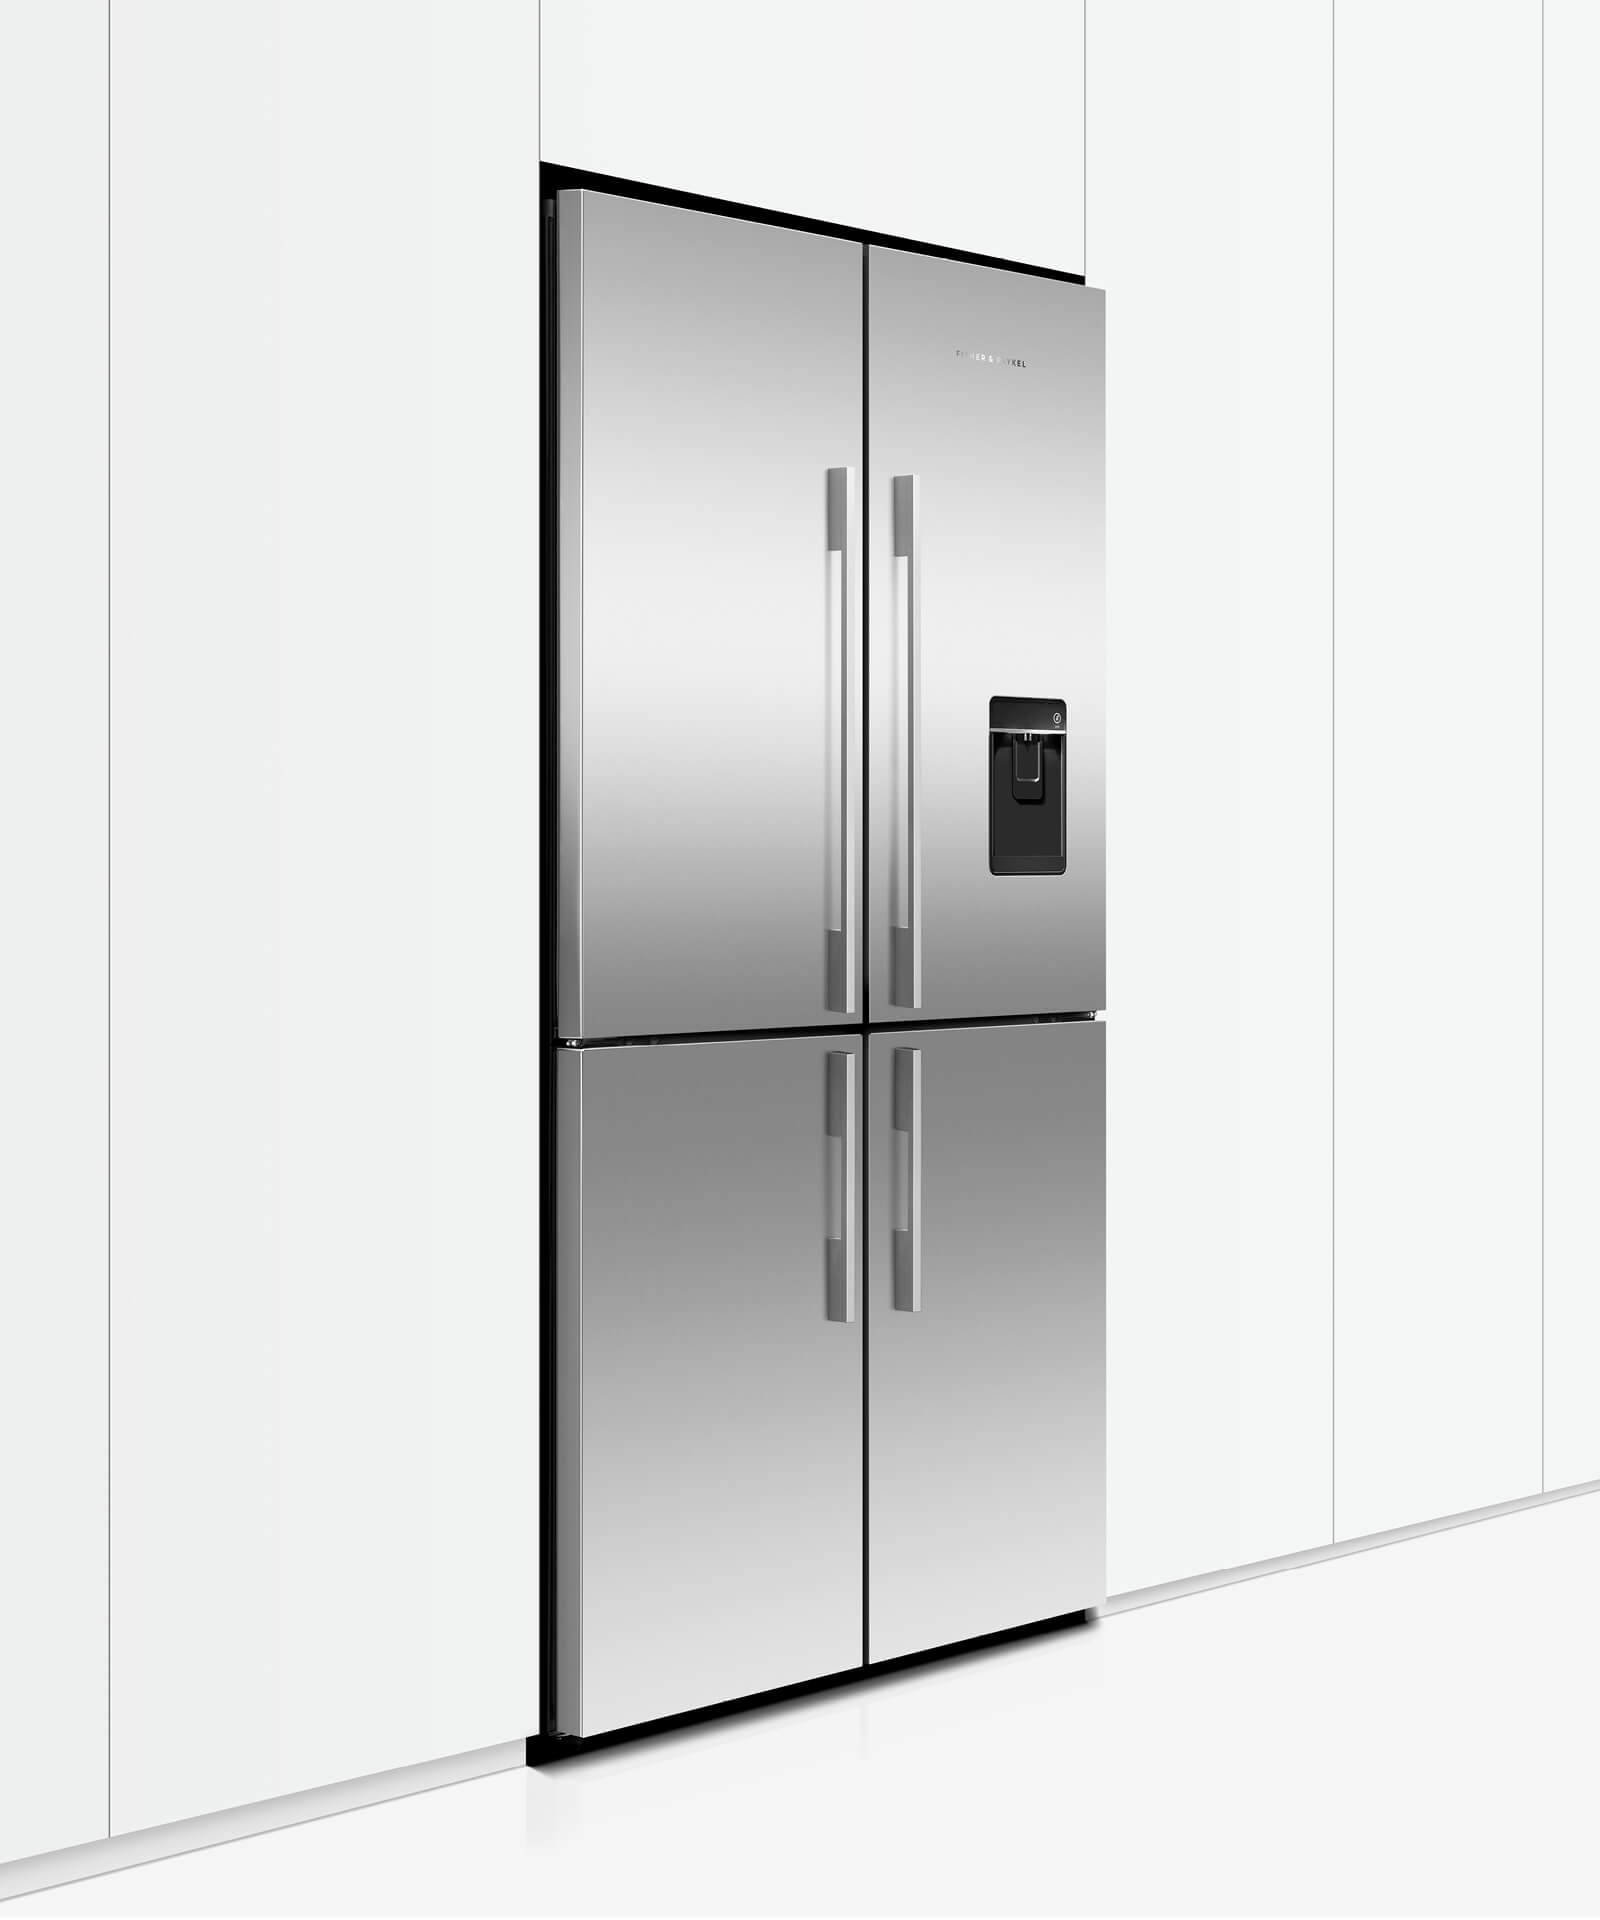 Fisher and paykel french door fridge manual